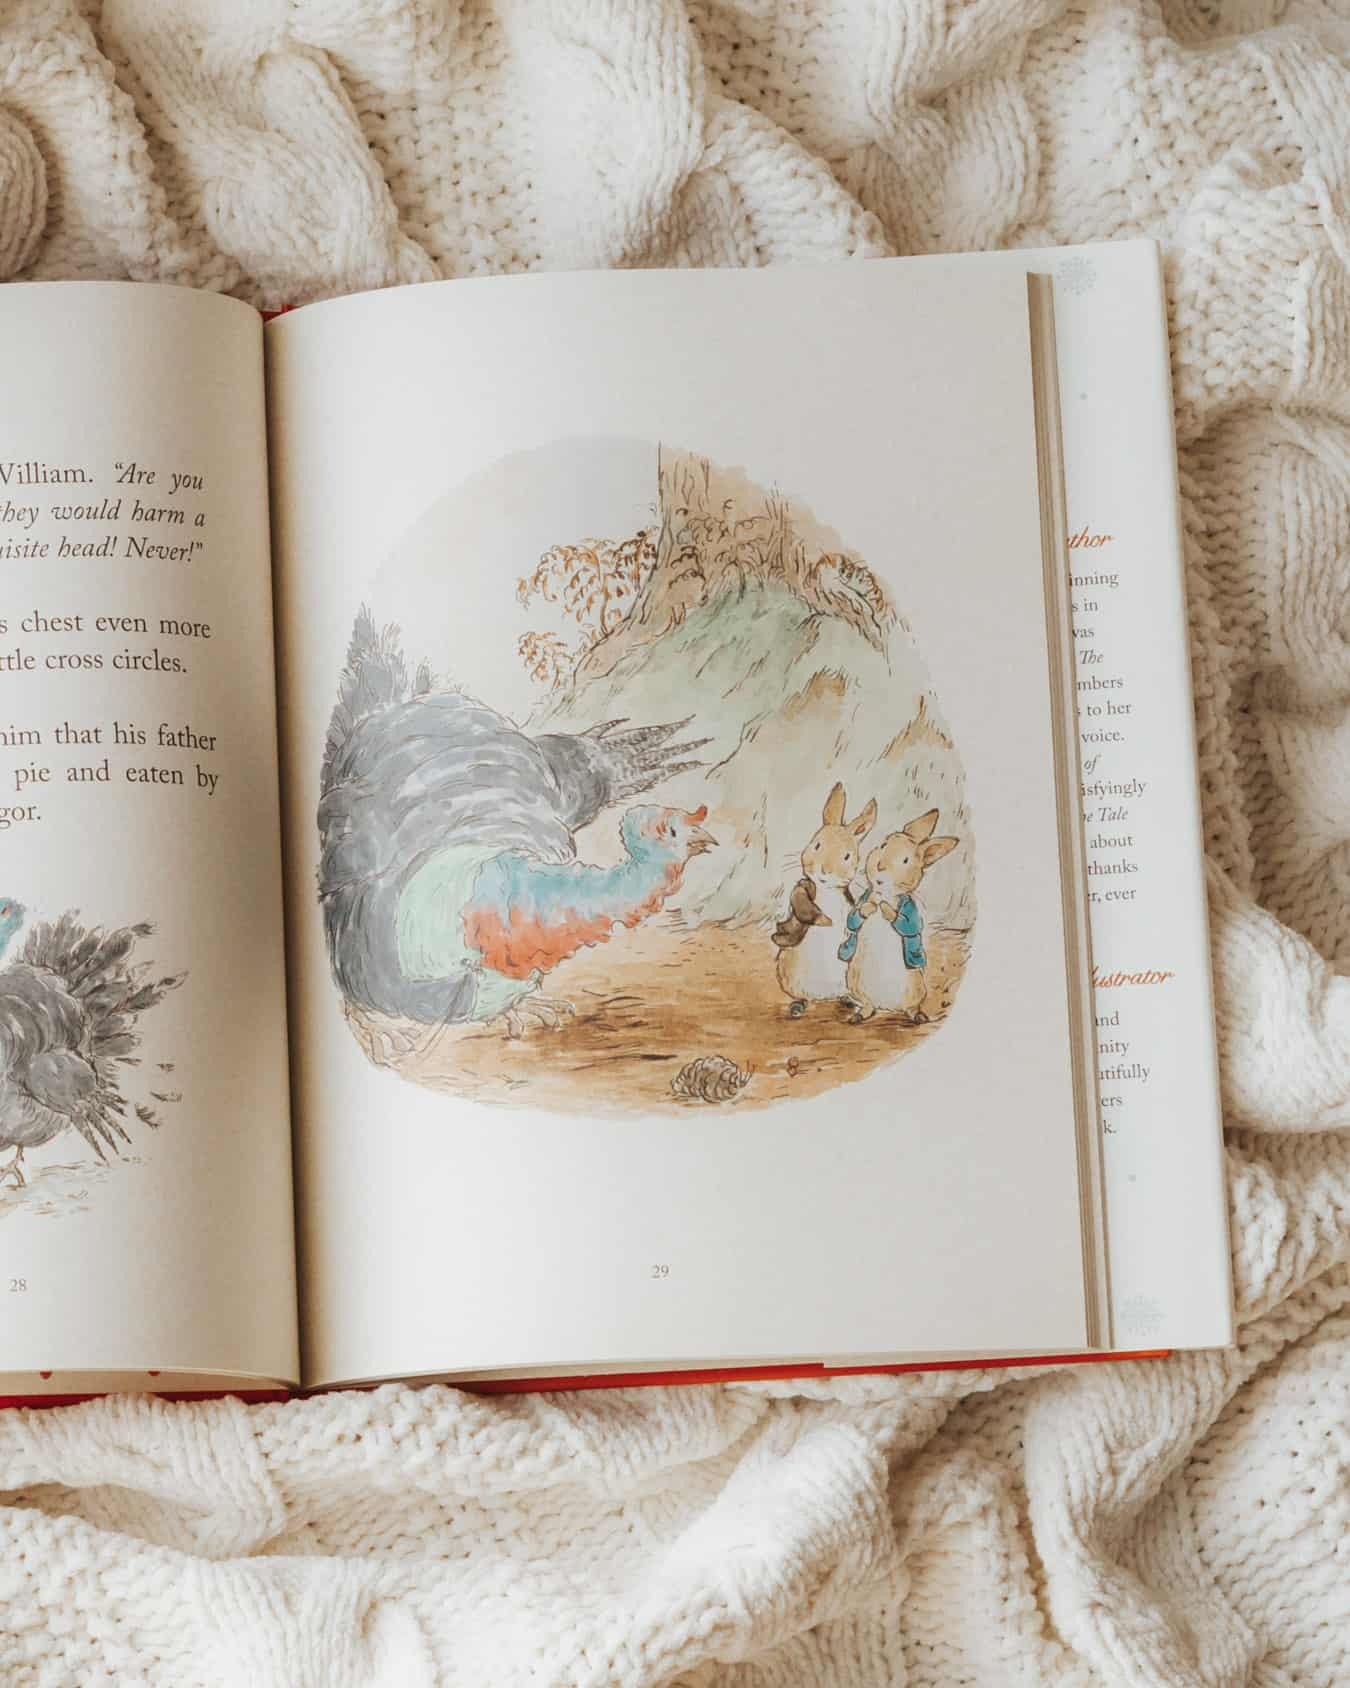 The interior pages of a Peter Rabbit book by Emma Thompson.